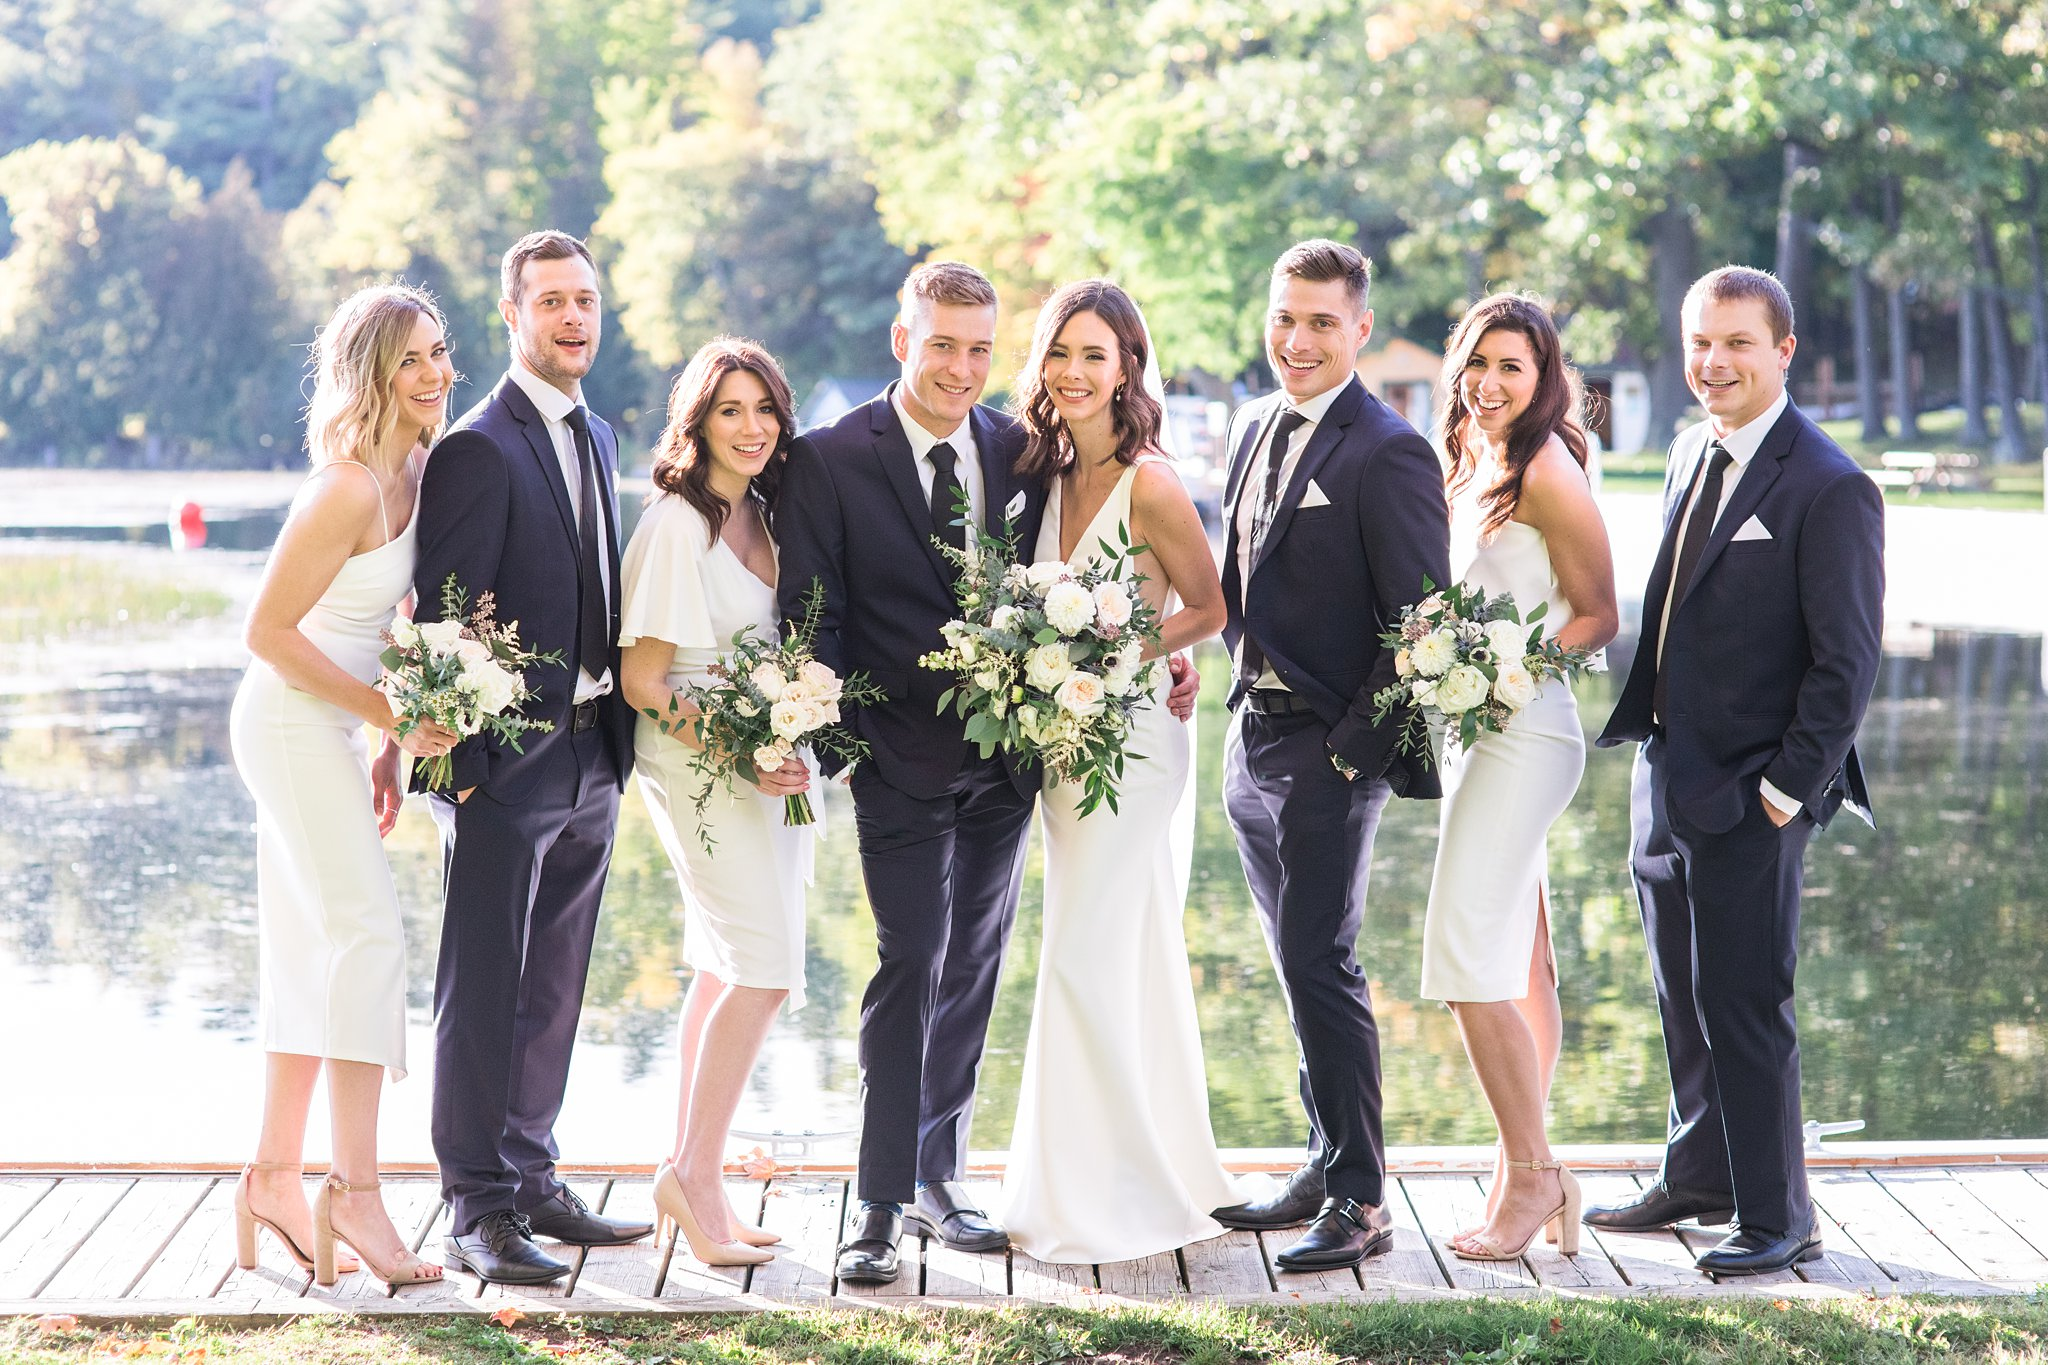 Wedding party at the lake, Opinicon Wedding Photos by Amy Pinder Photography